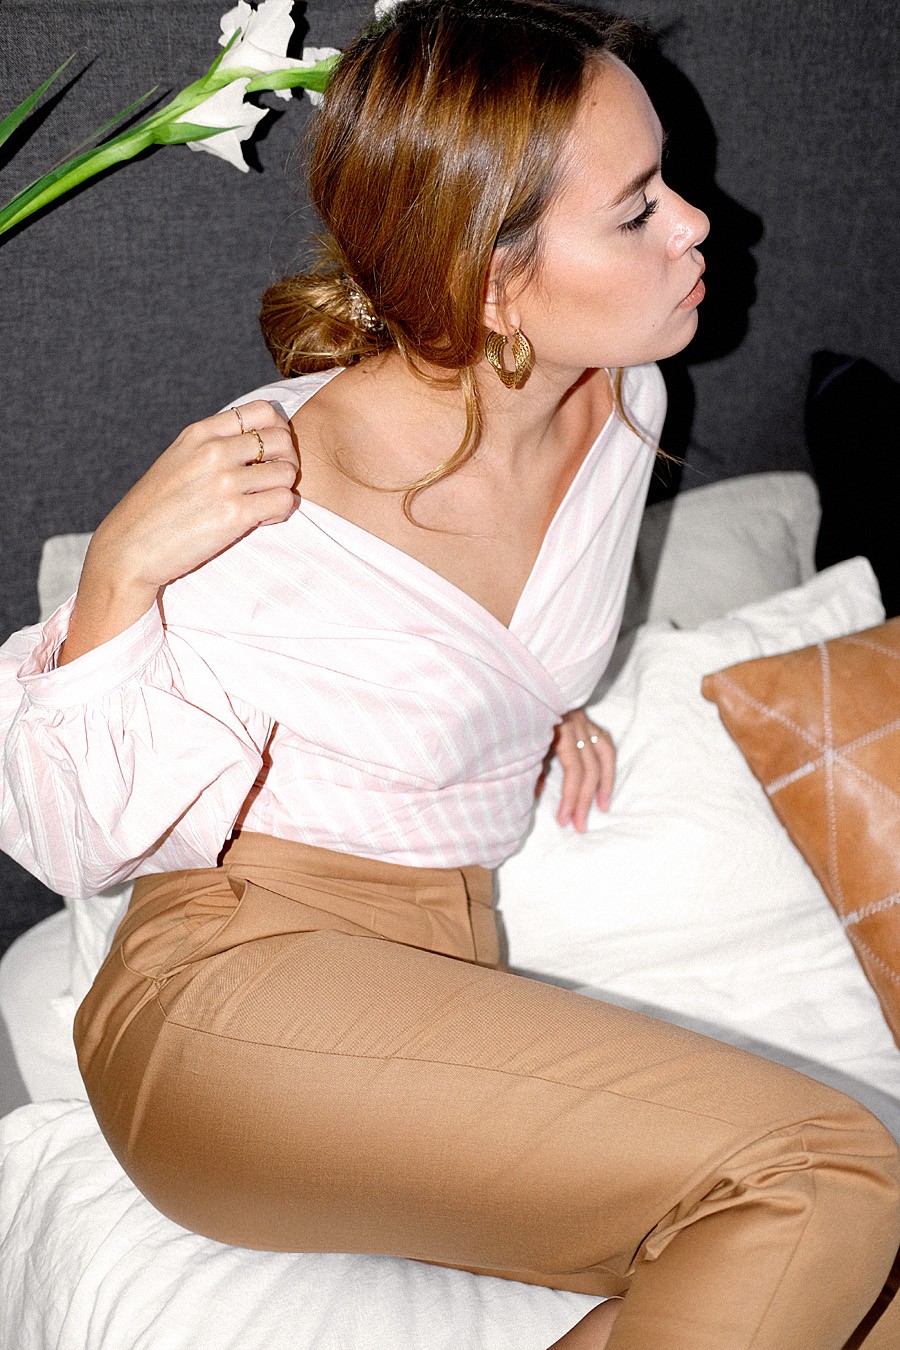 Outfit: Wrapped in Rosé. Desi is wearing: Wrapping blouse, Tailored pants, Sock boots, twisted gold earrings